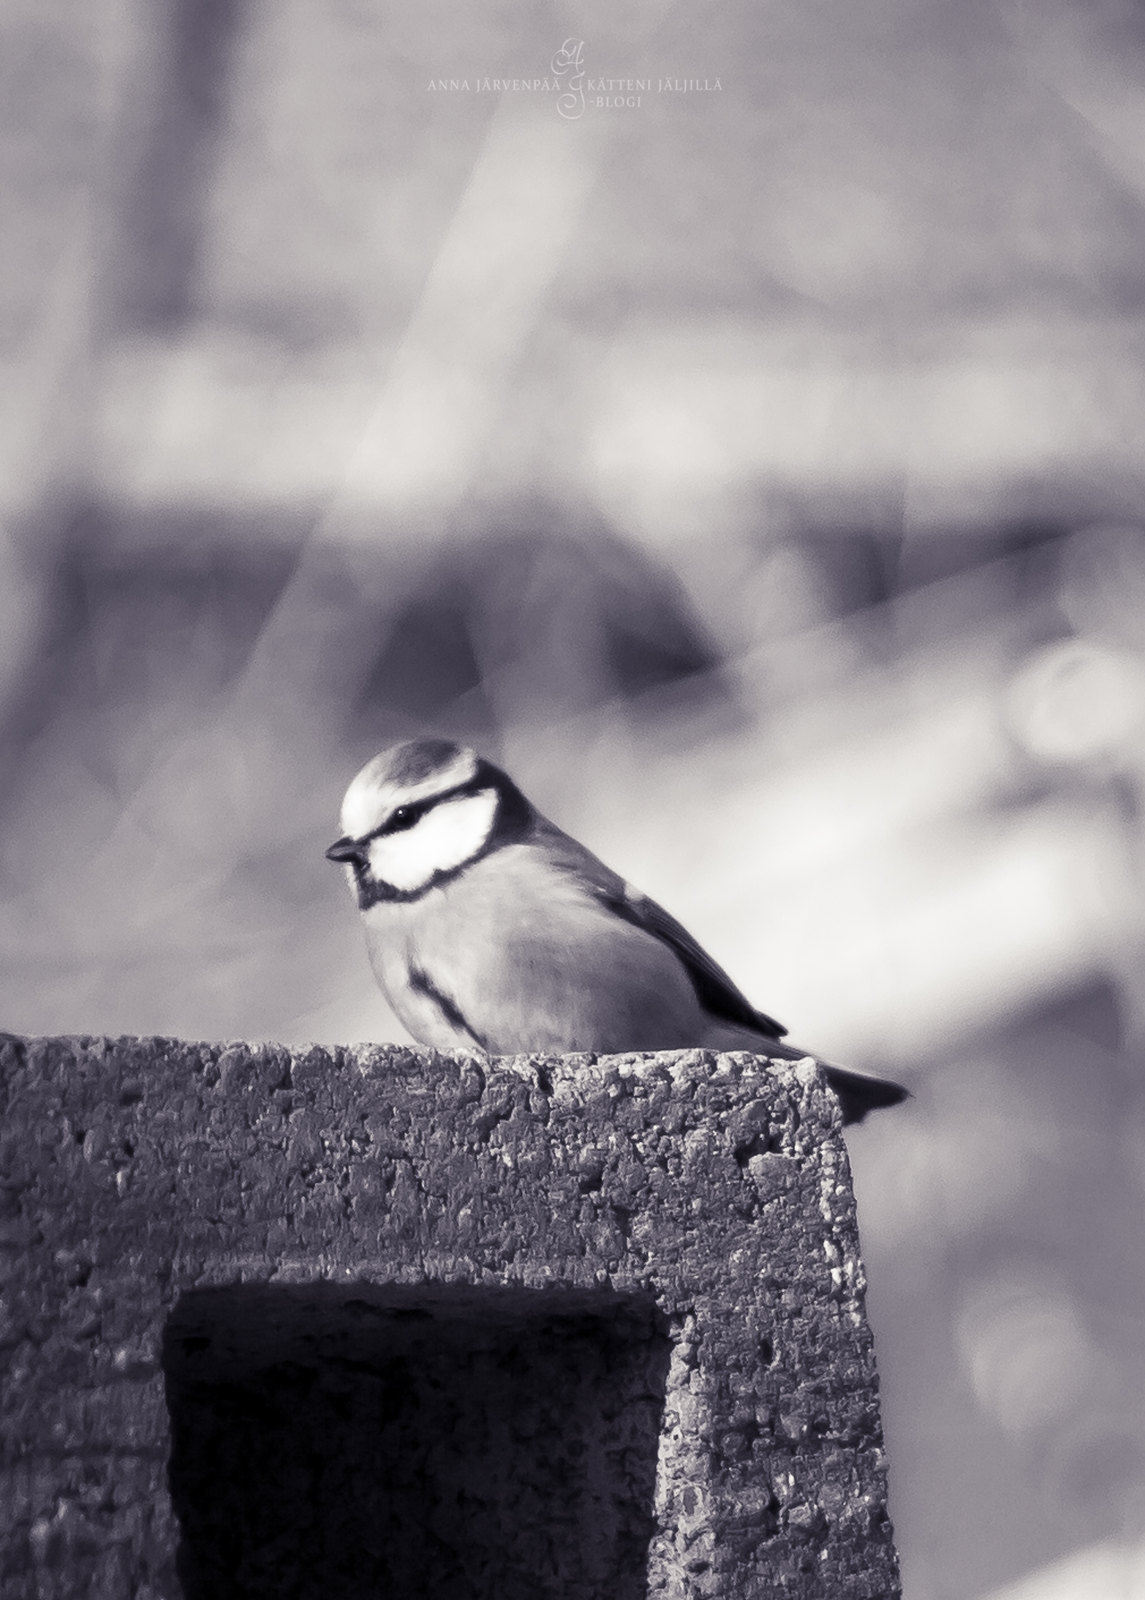 Blue tit in monochrome